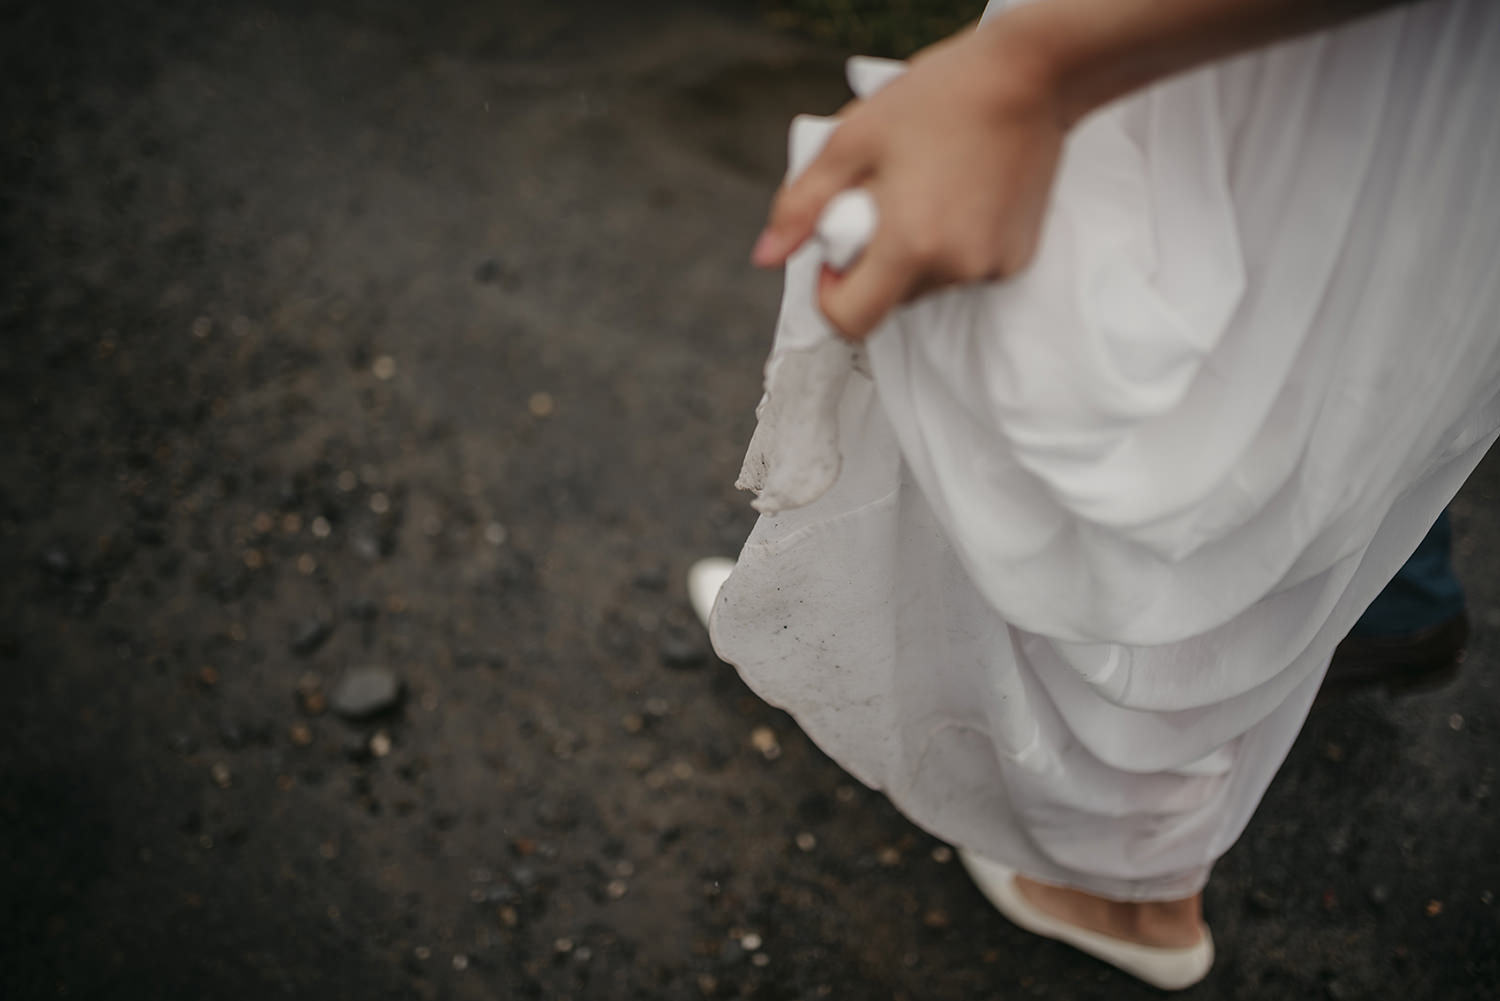 The bride's dress got a bit muddy, but it didn't worry her